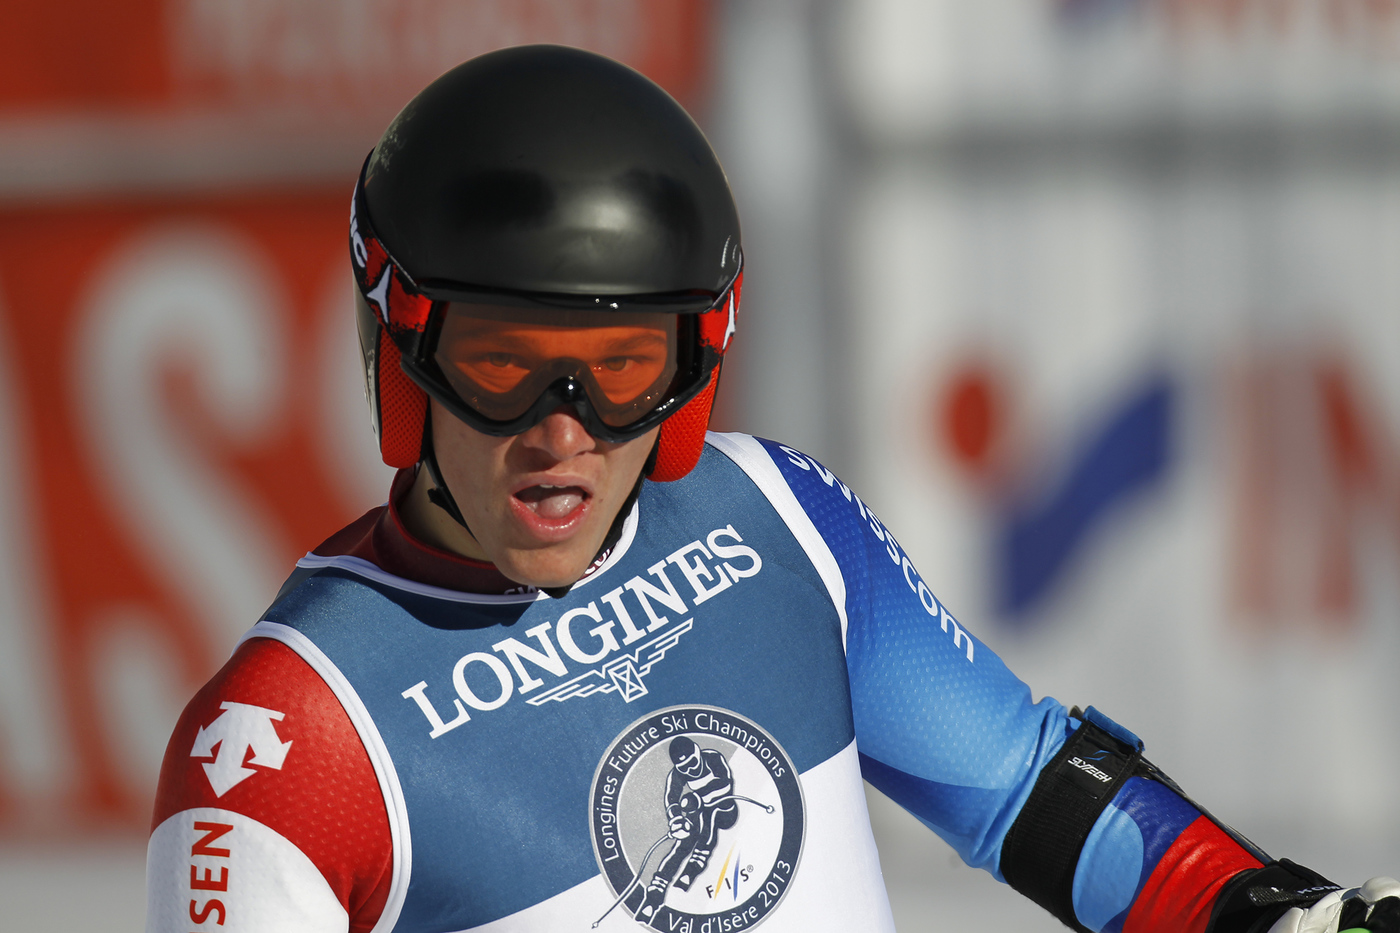 Longines Alpine Skiing Event: The Longines Future Ski Champion 2013 9